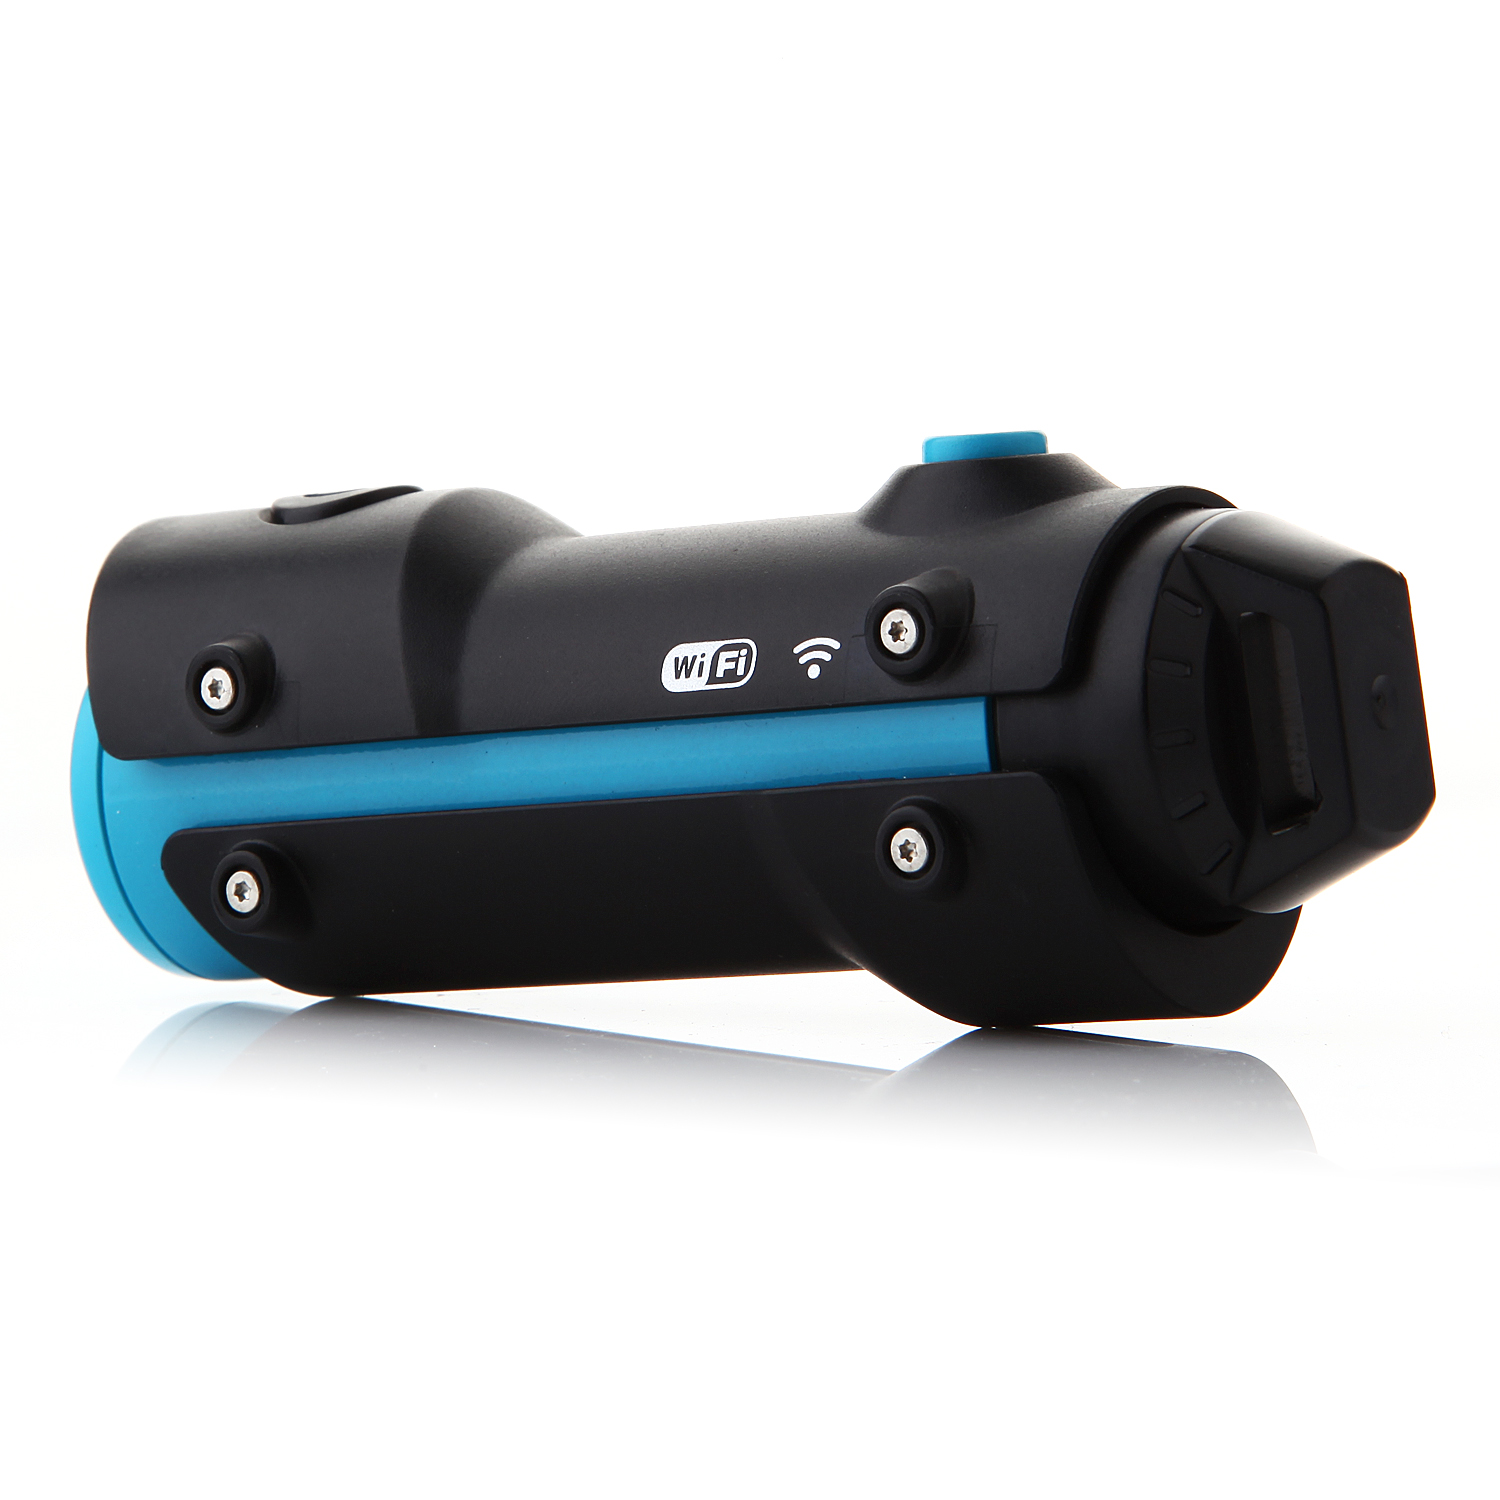 WiFi 10 Meters Waterproof Action Camcorder 12MP FHD 1080P Sports Video Camera Blue